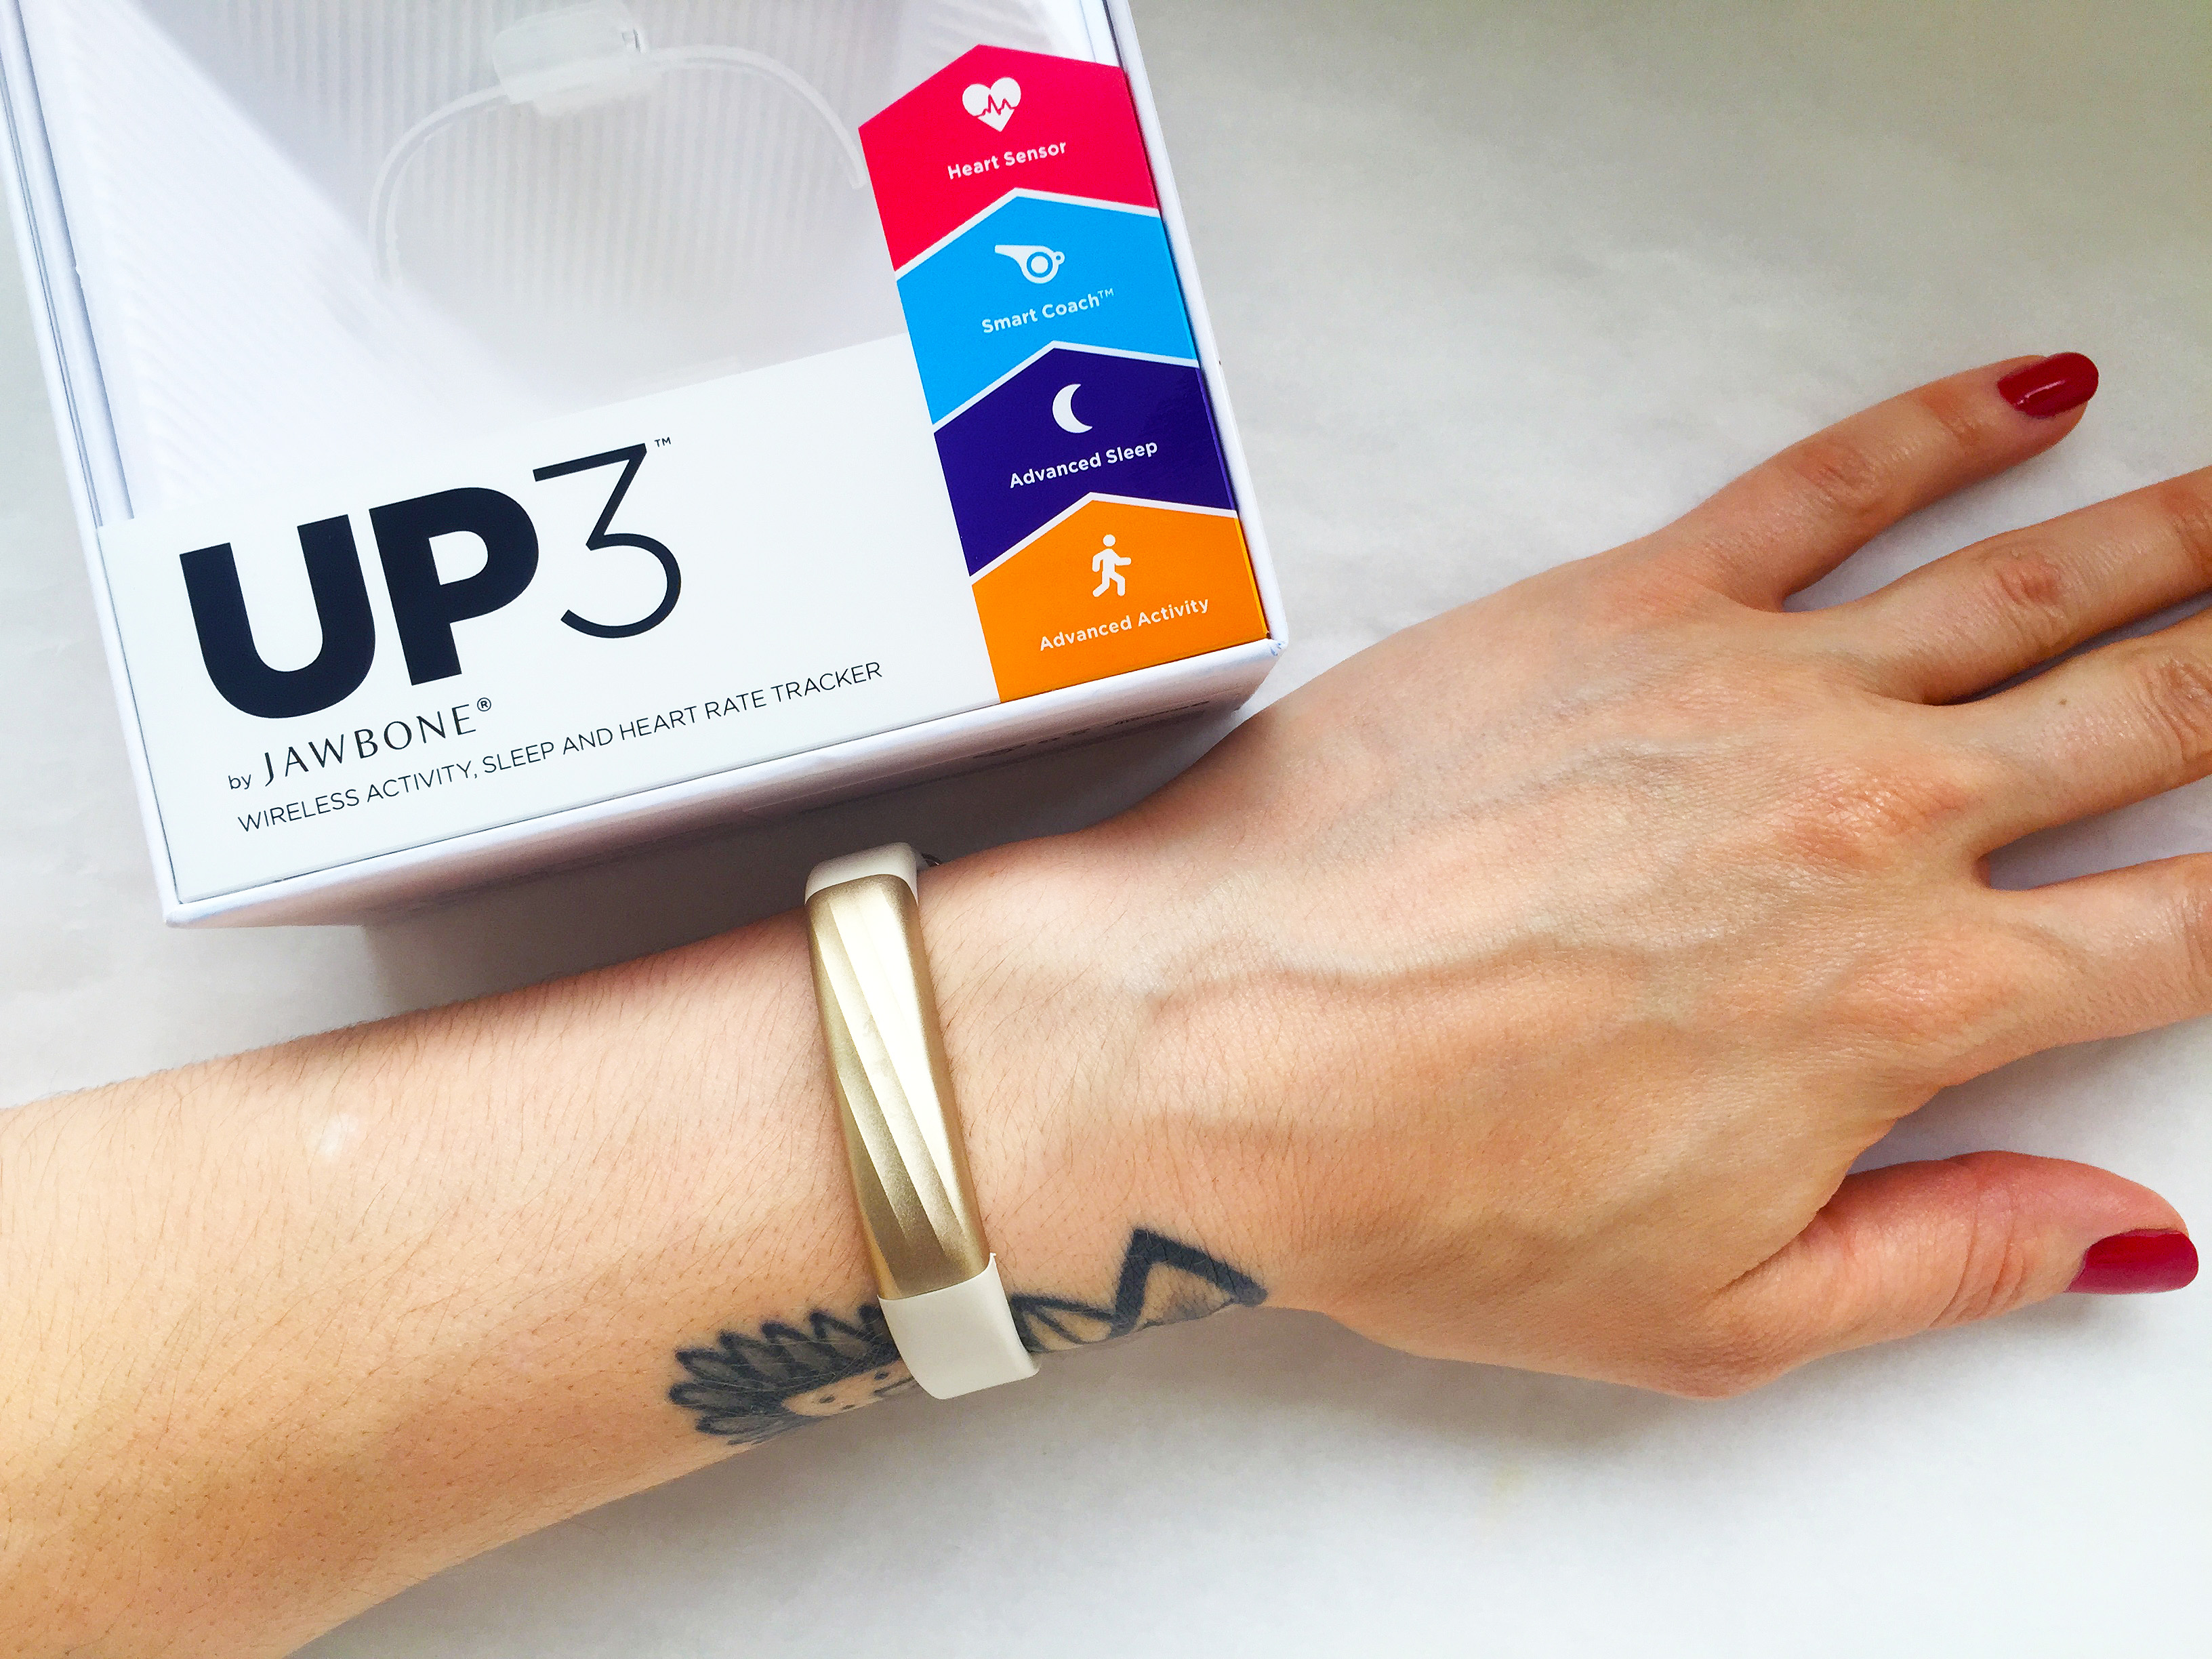 jawbone-up3-review-jewellery-or-super-gadget-1